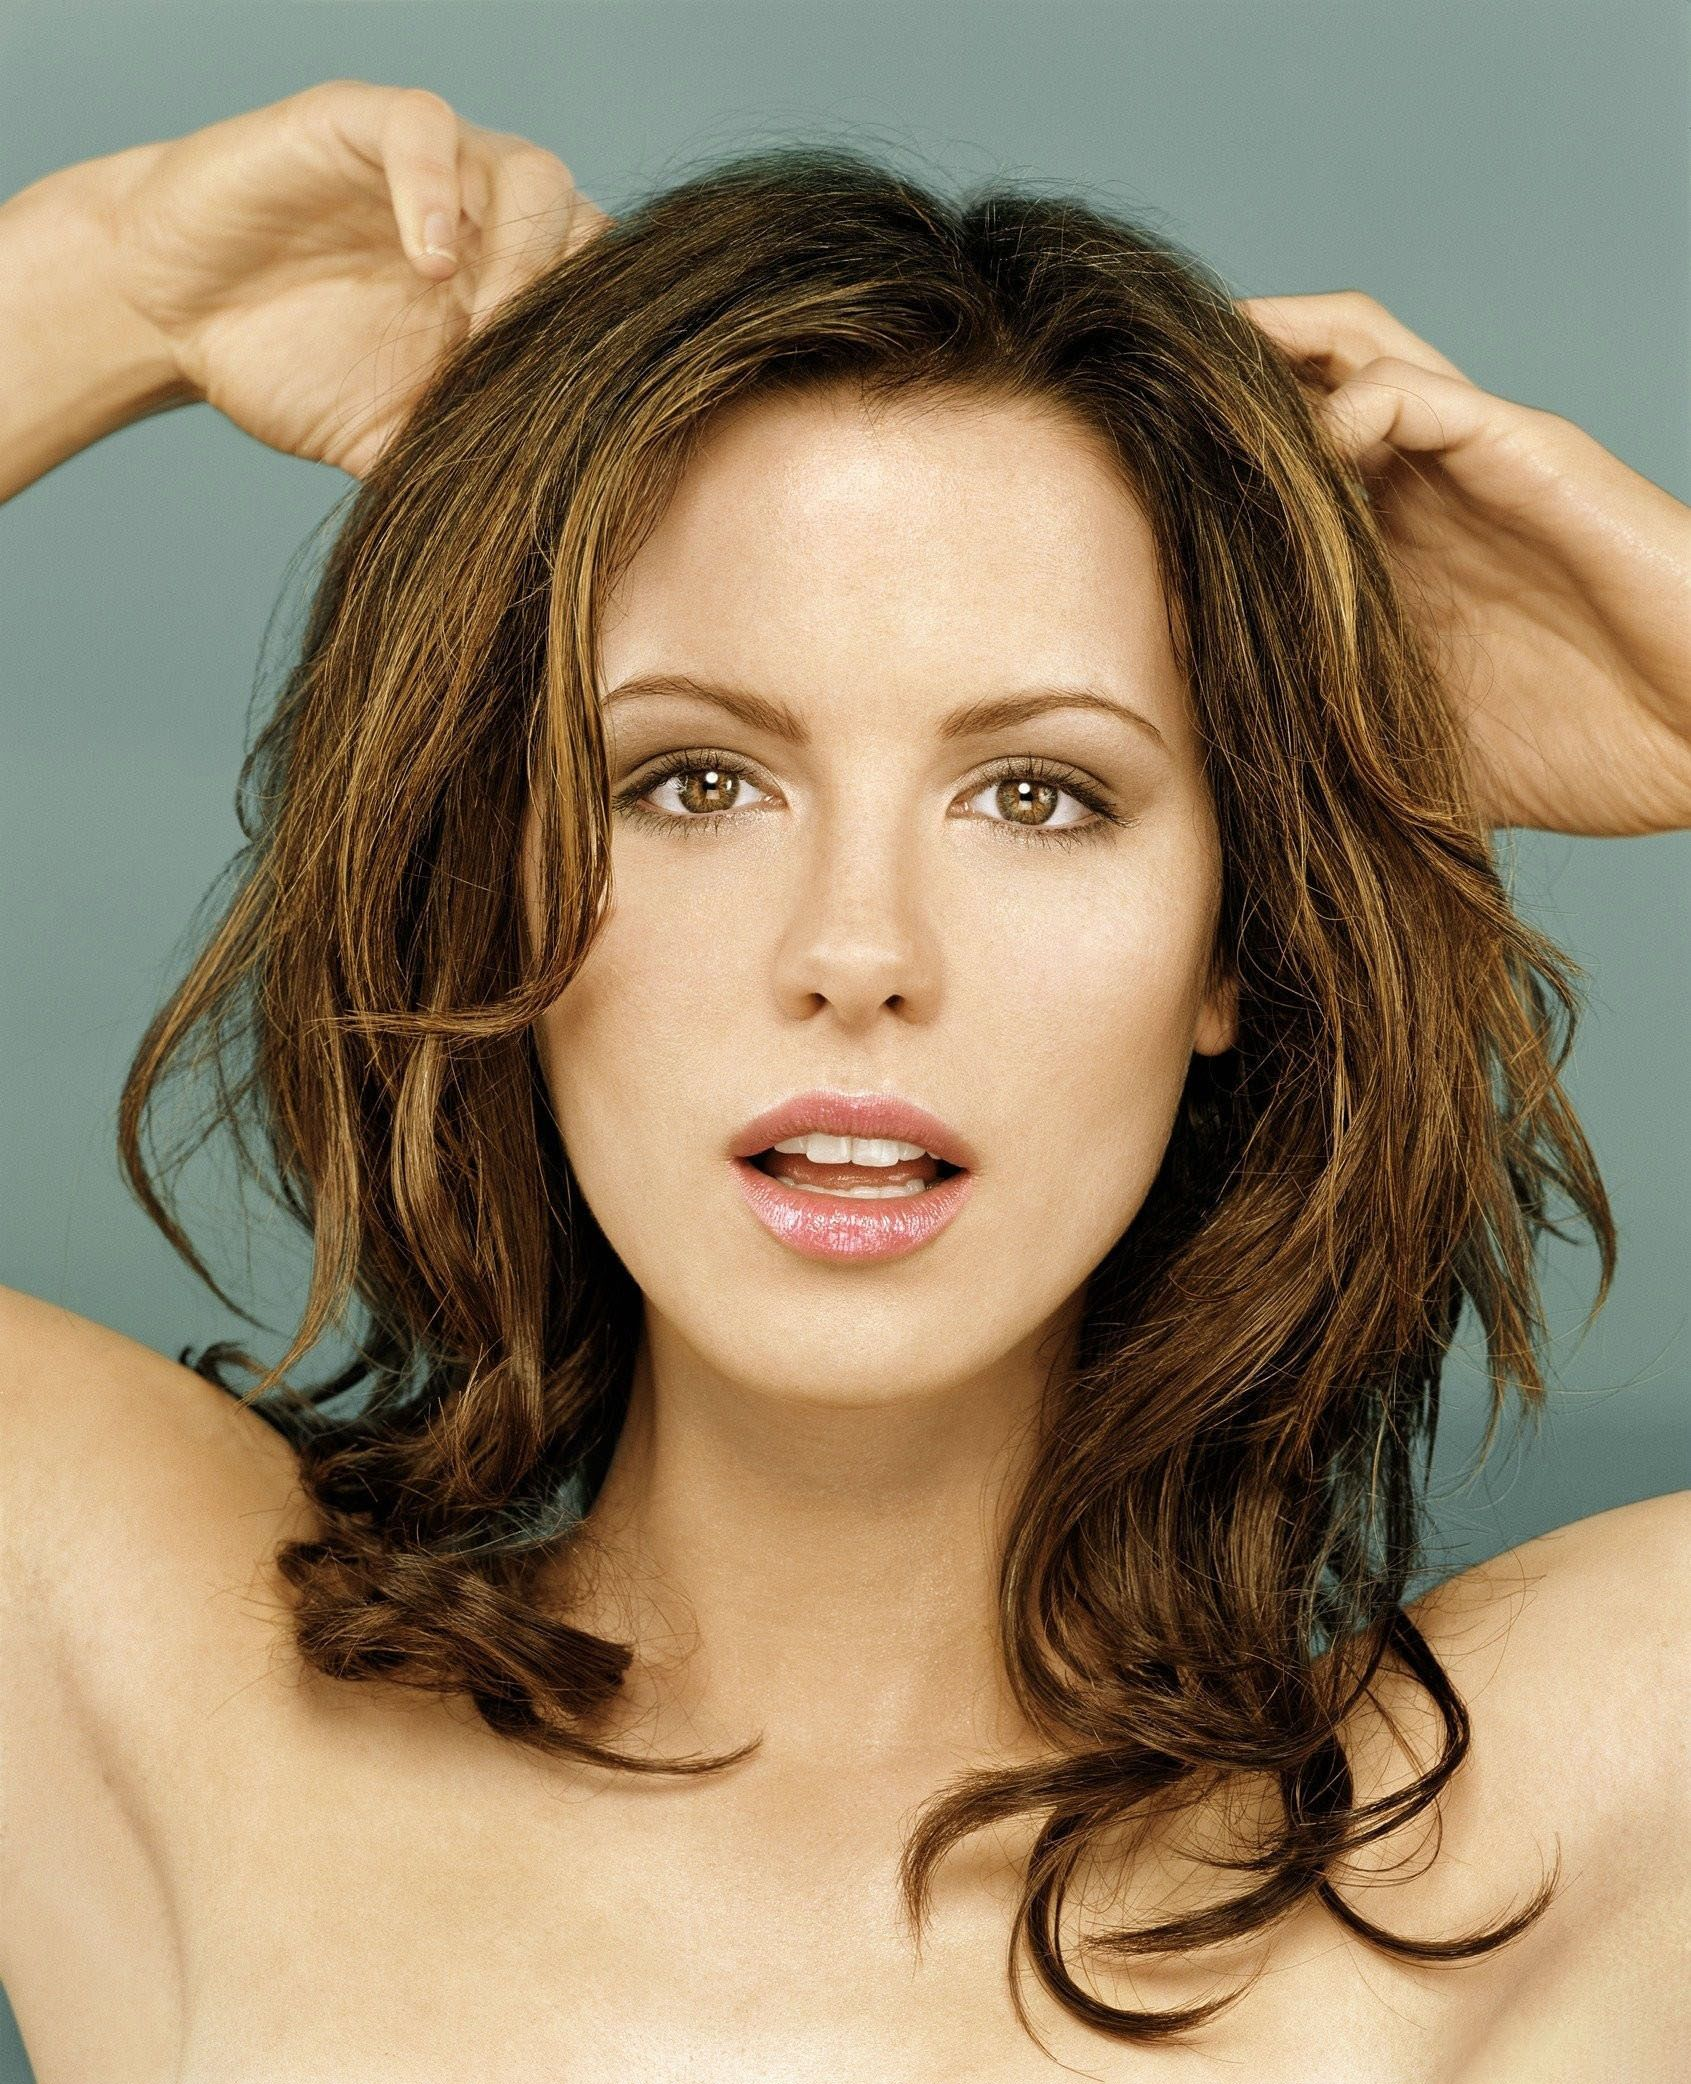 Kate Beckinsale 2001 portrait (Xpost from /r/FamousFaces